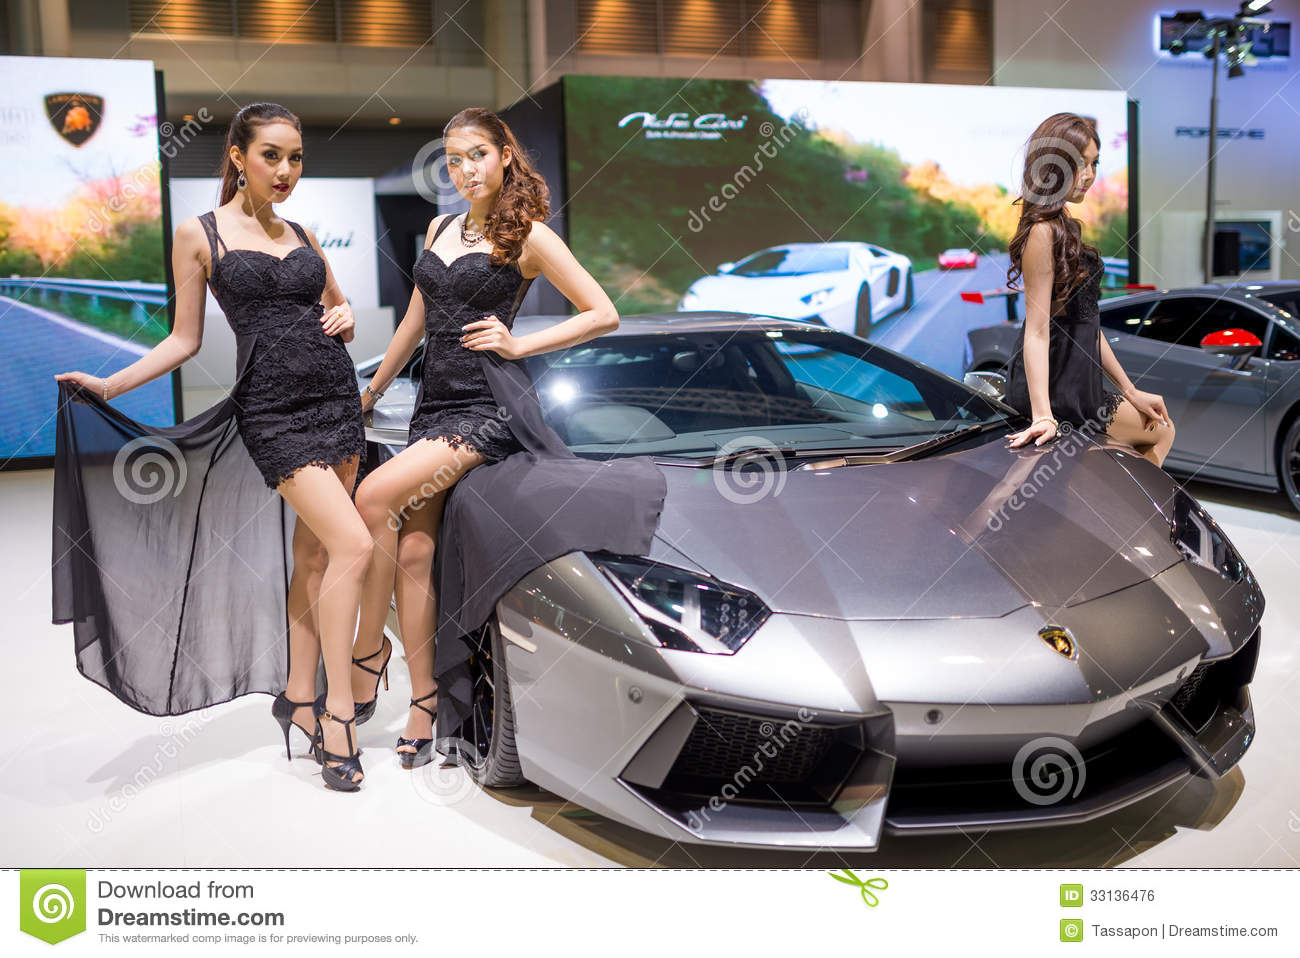 lamborghini aventador avec de jolies filles sur l 39 affichage photo ditorial image du ditorial. Black Bedroom Furniture Sets. Home Design Ideas